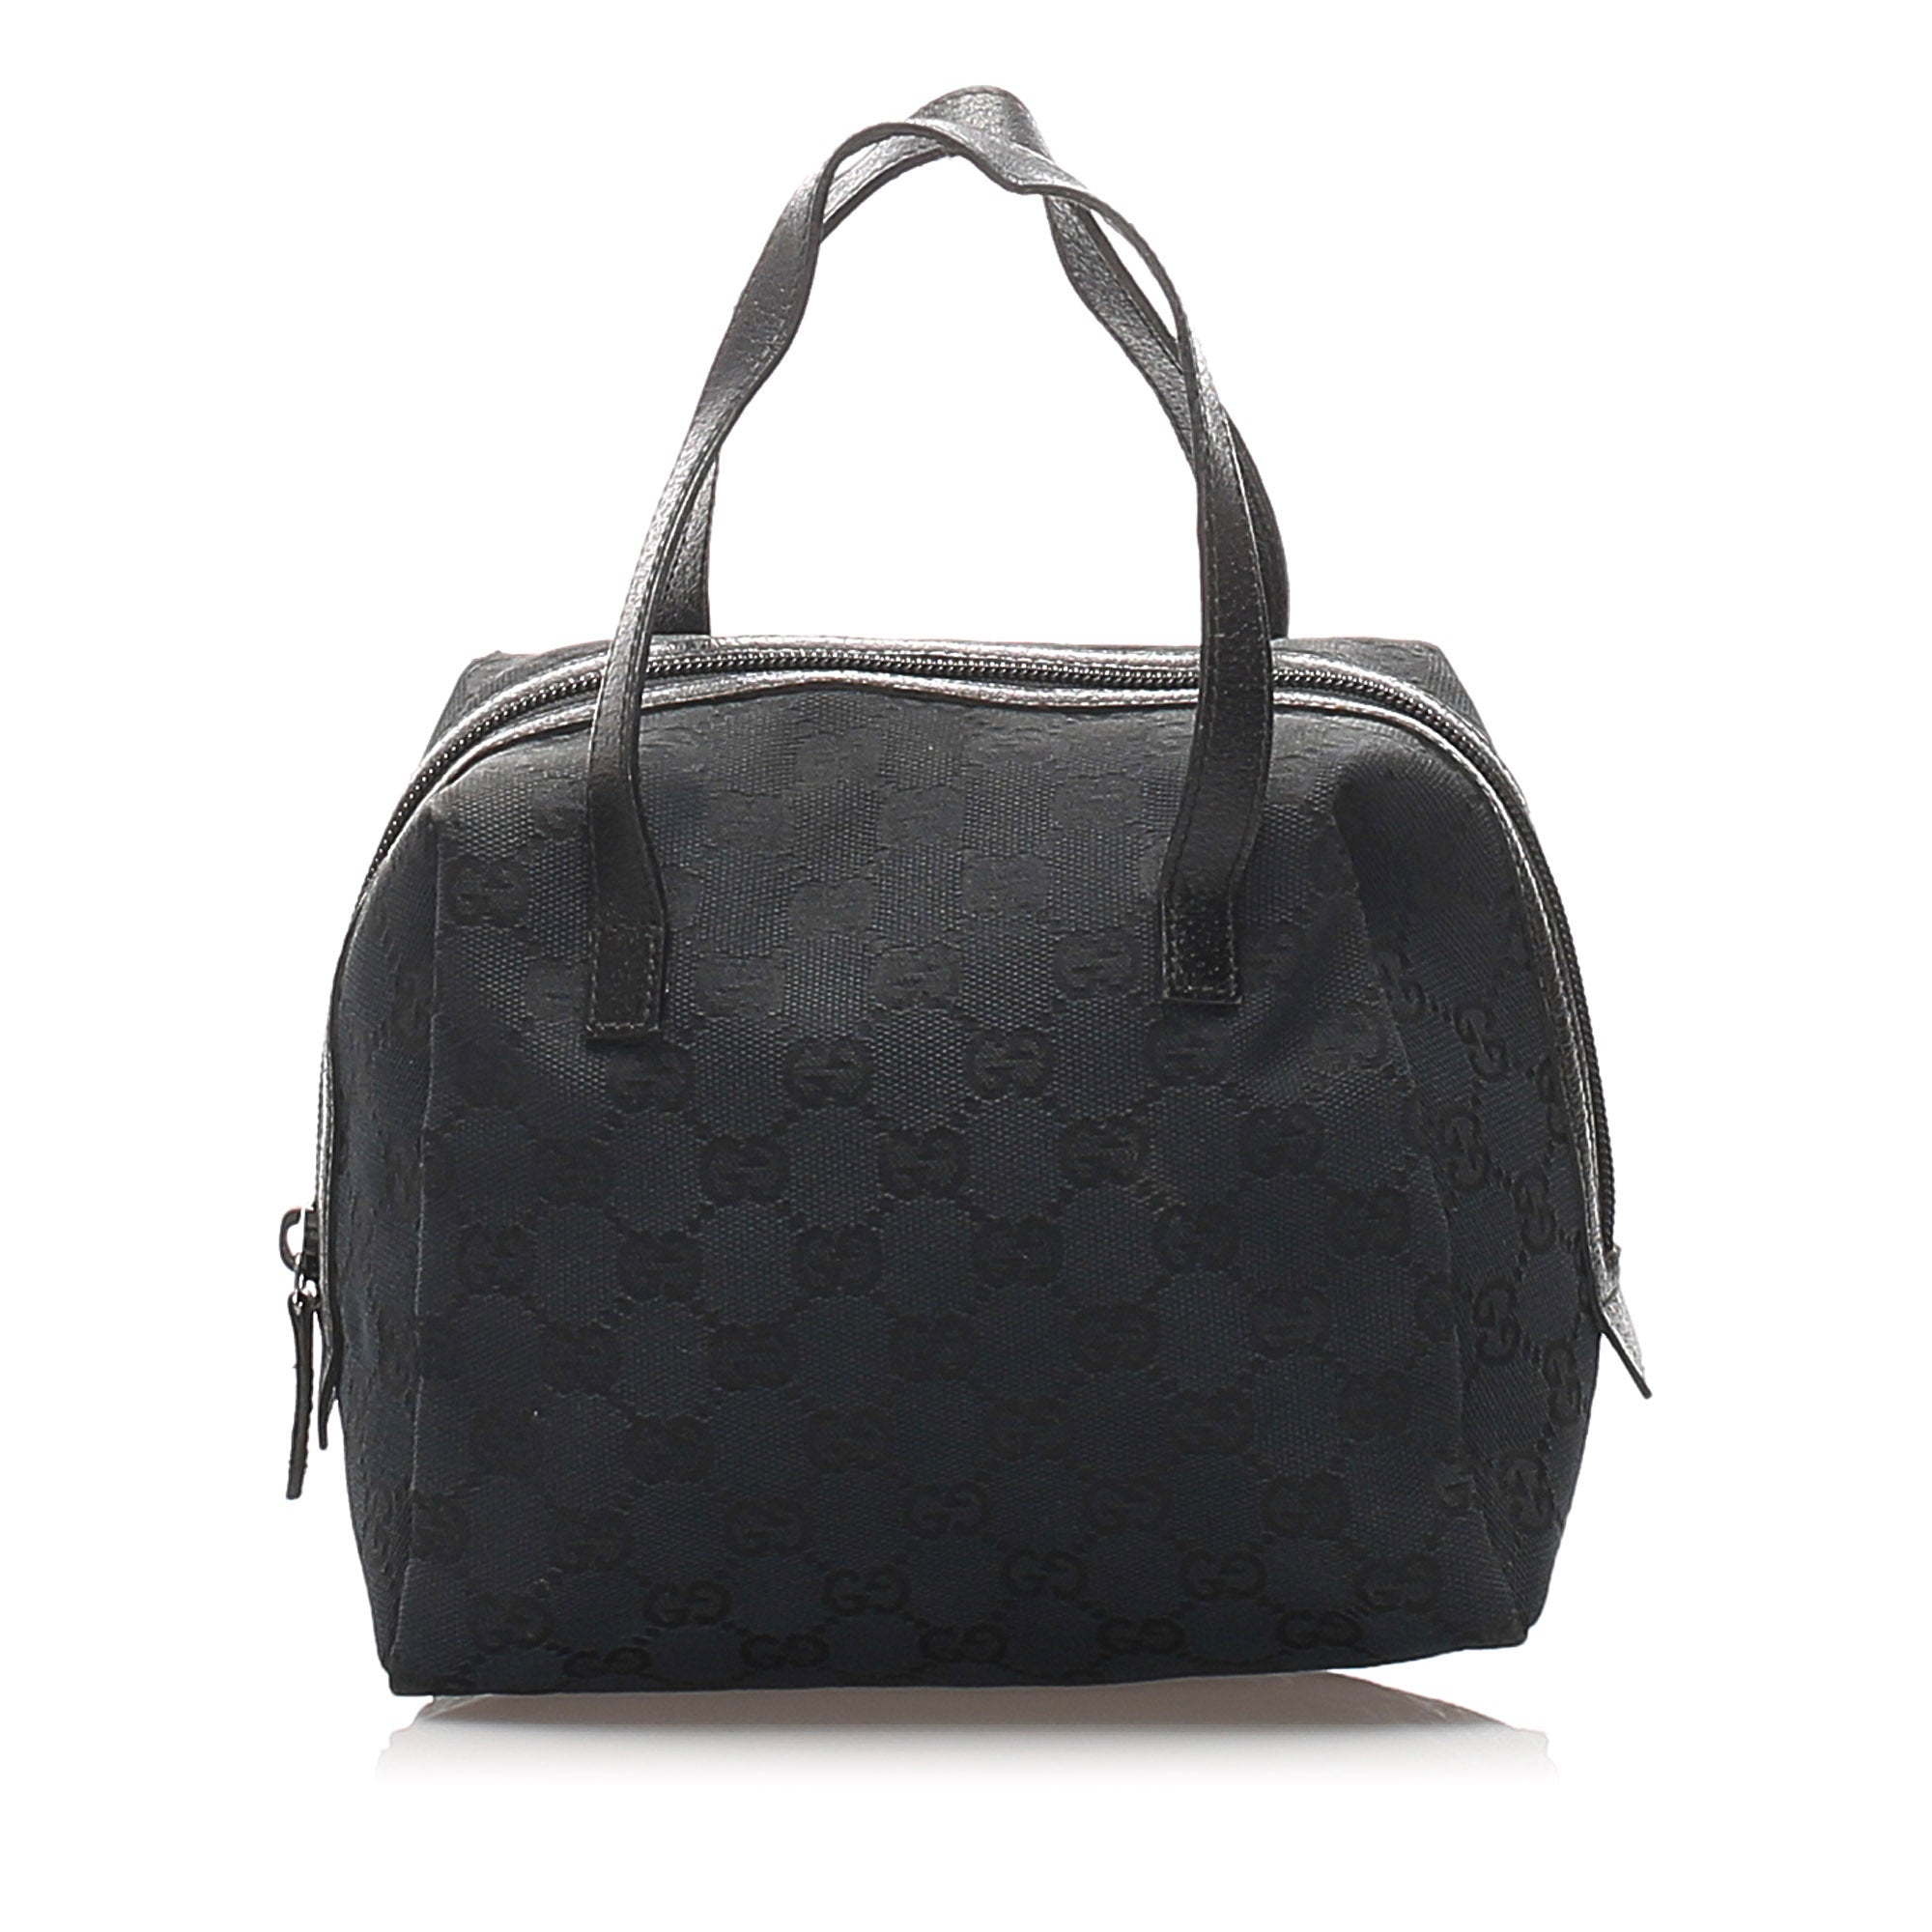 Gucci Black GG Canvas Handbag